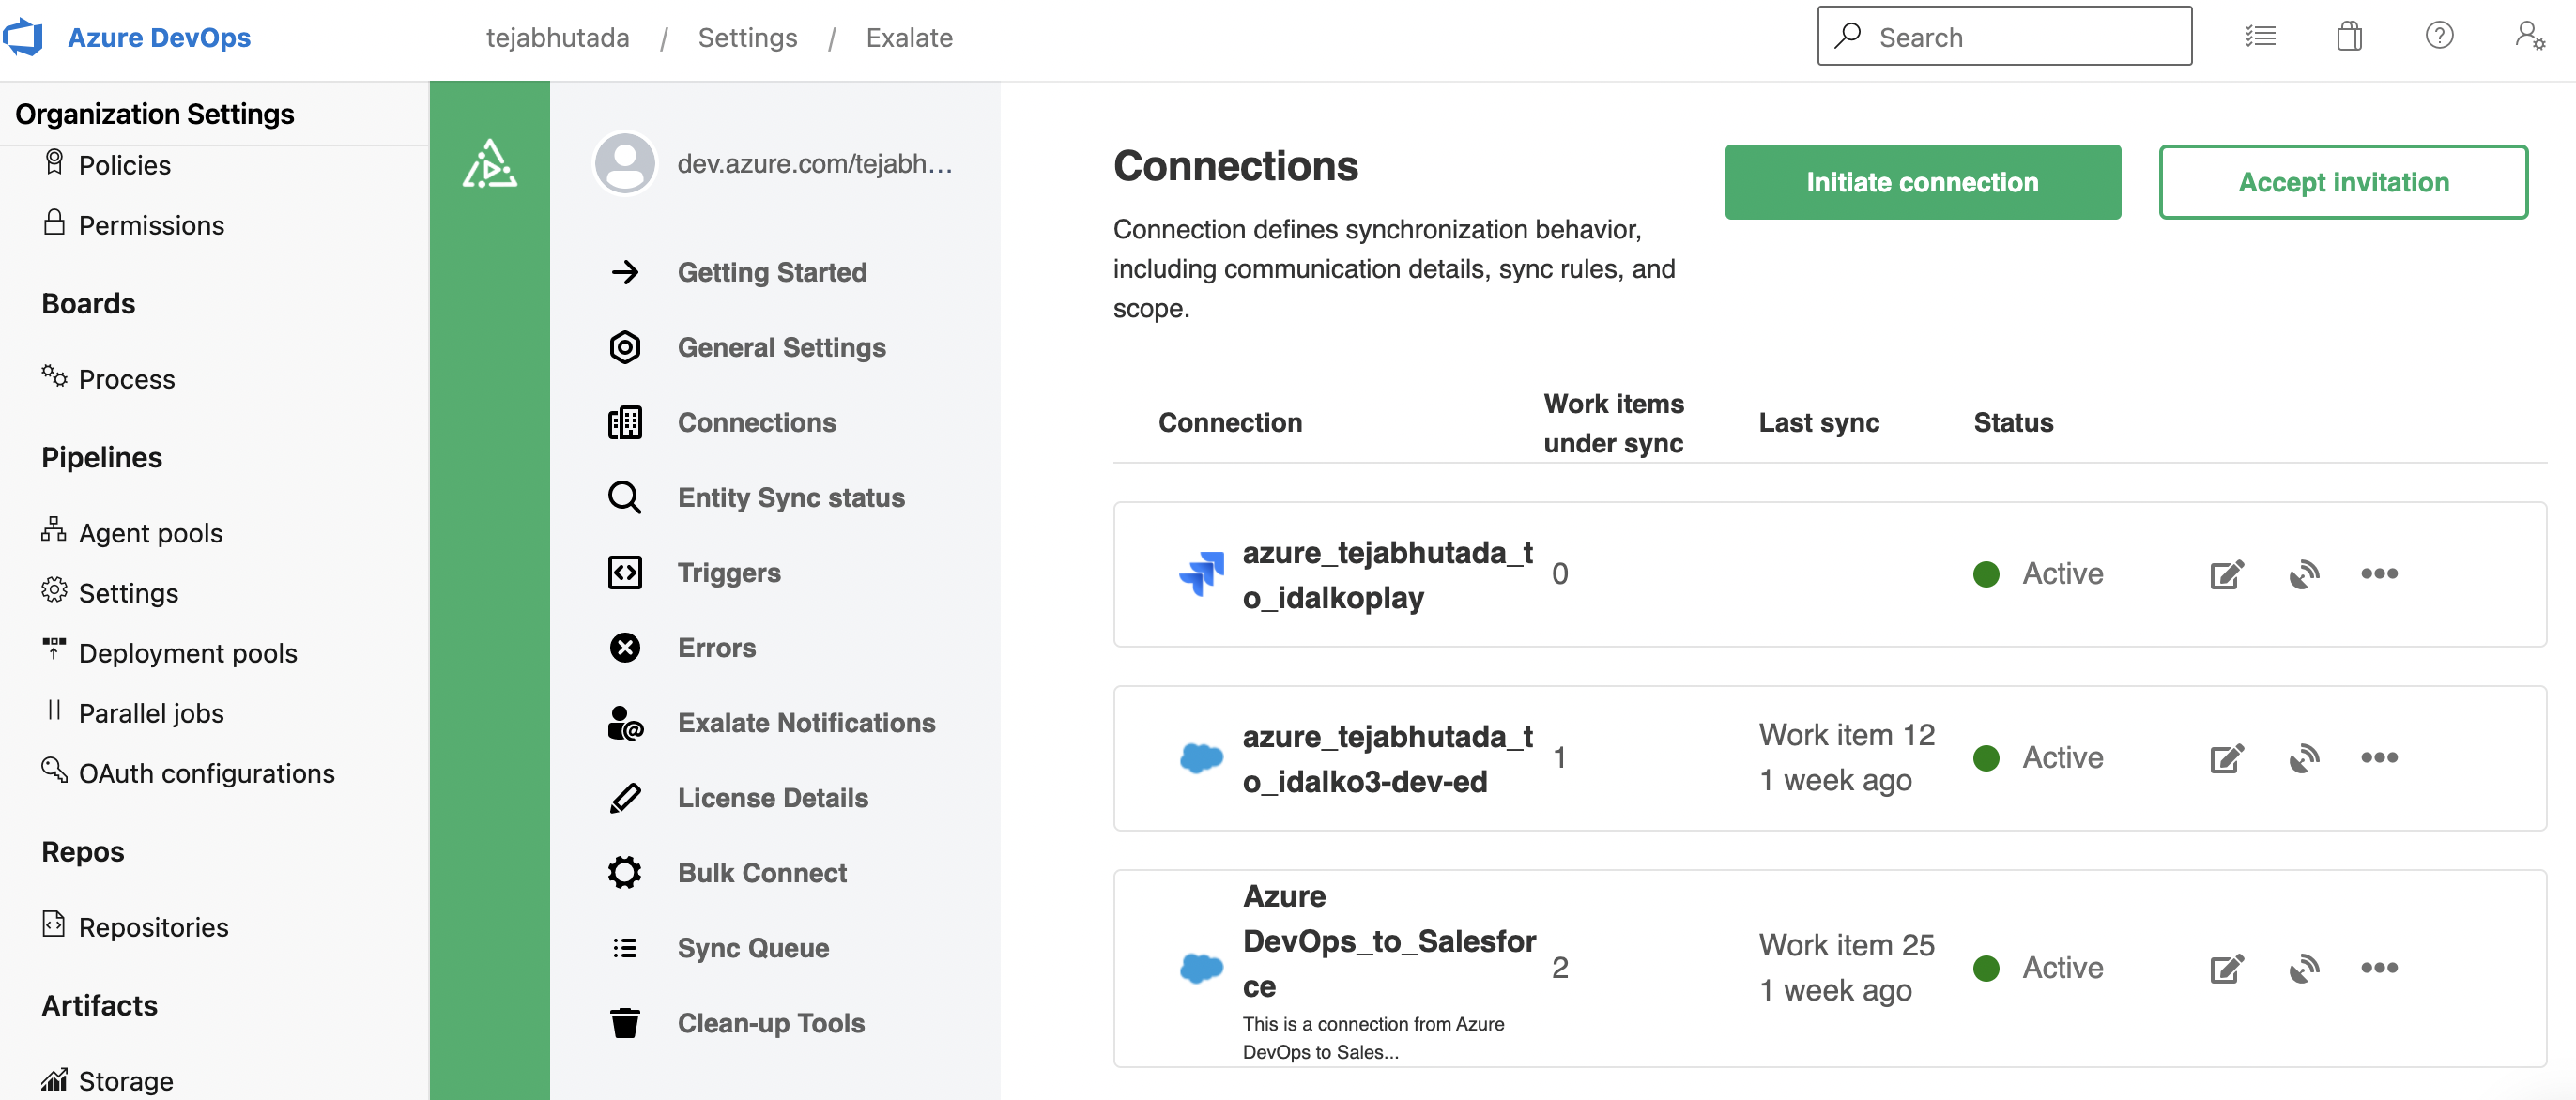 Integration connection between Azure DevOps and ServiceNow